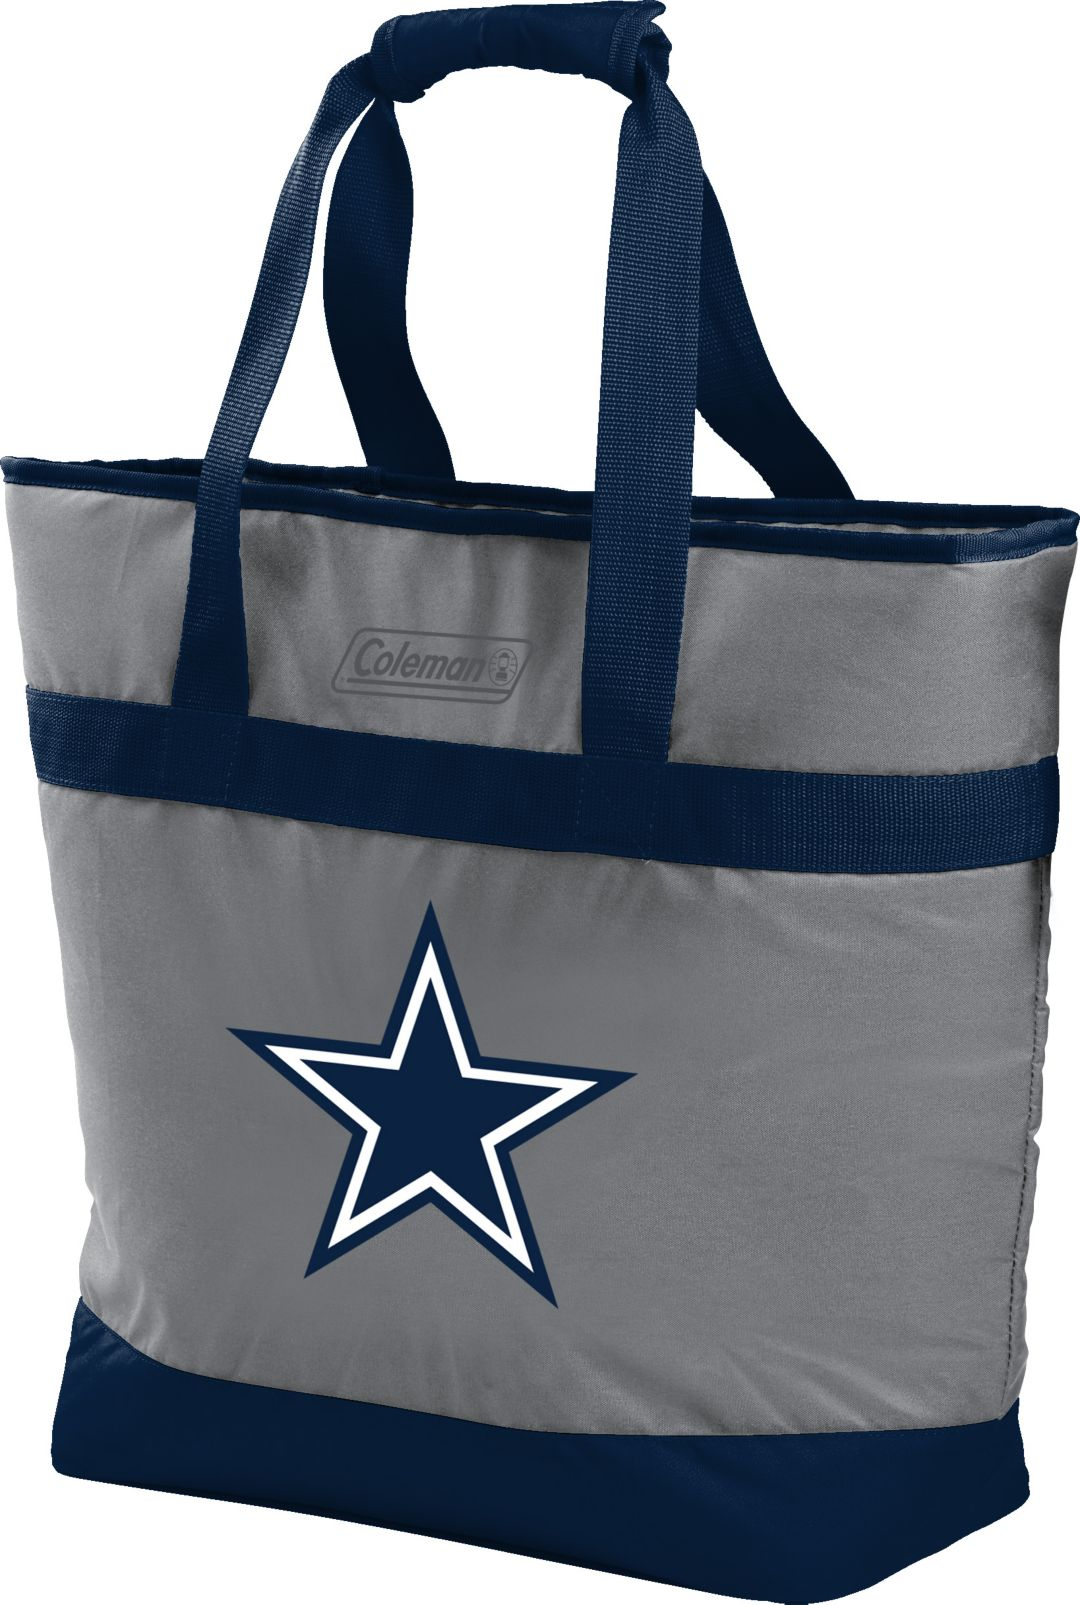 brand new f8cf4 5a8a5 Rawlings Dallas Cowboys Large Tote Cooler